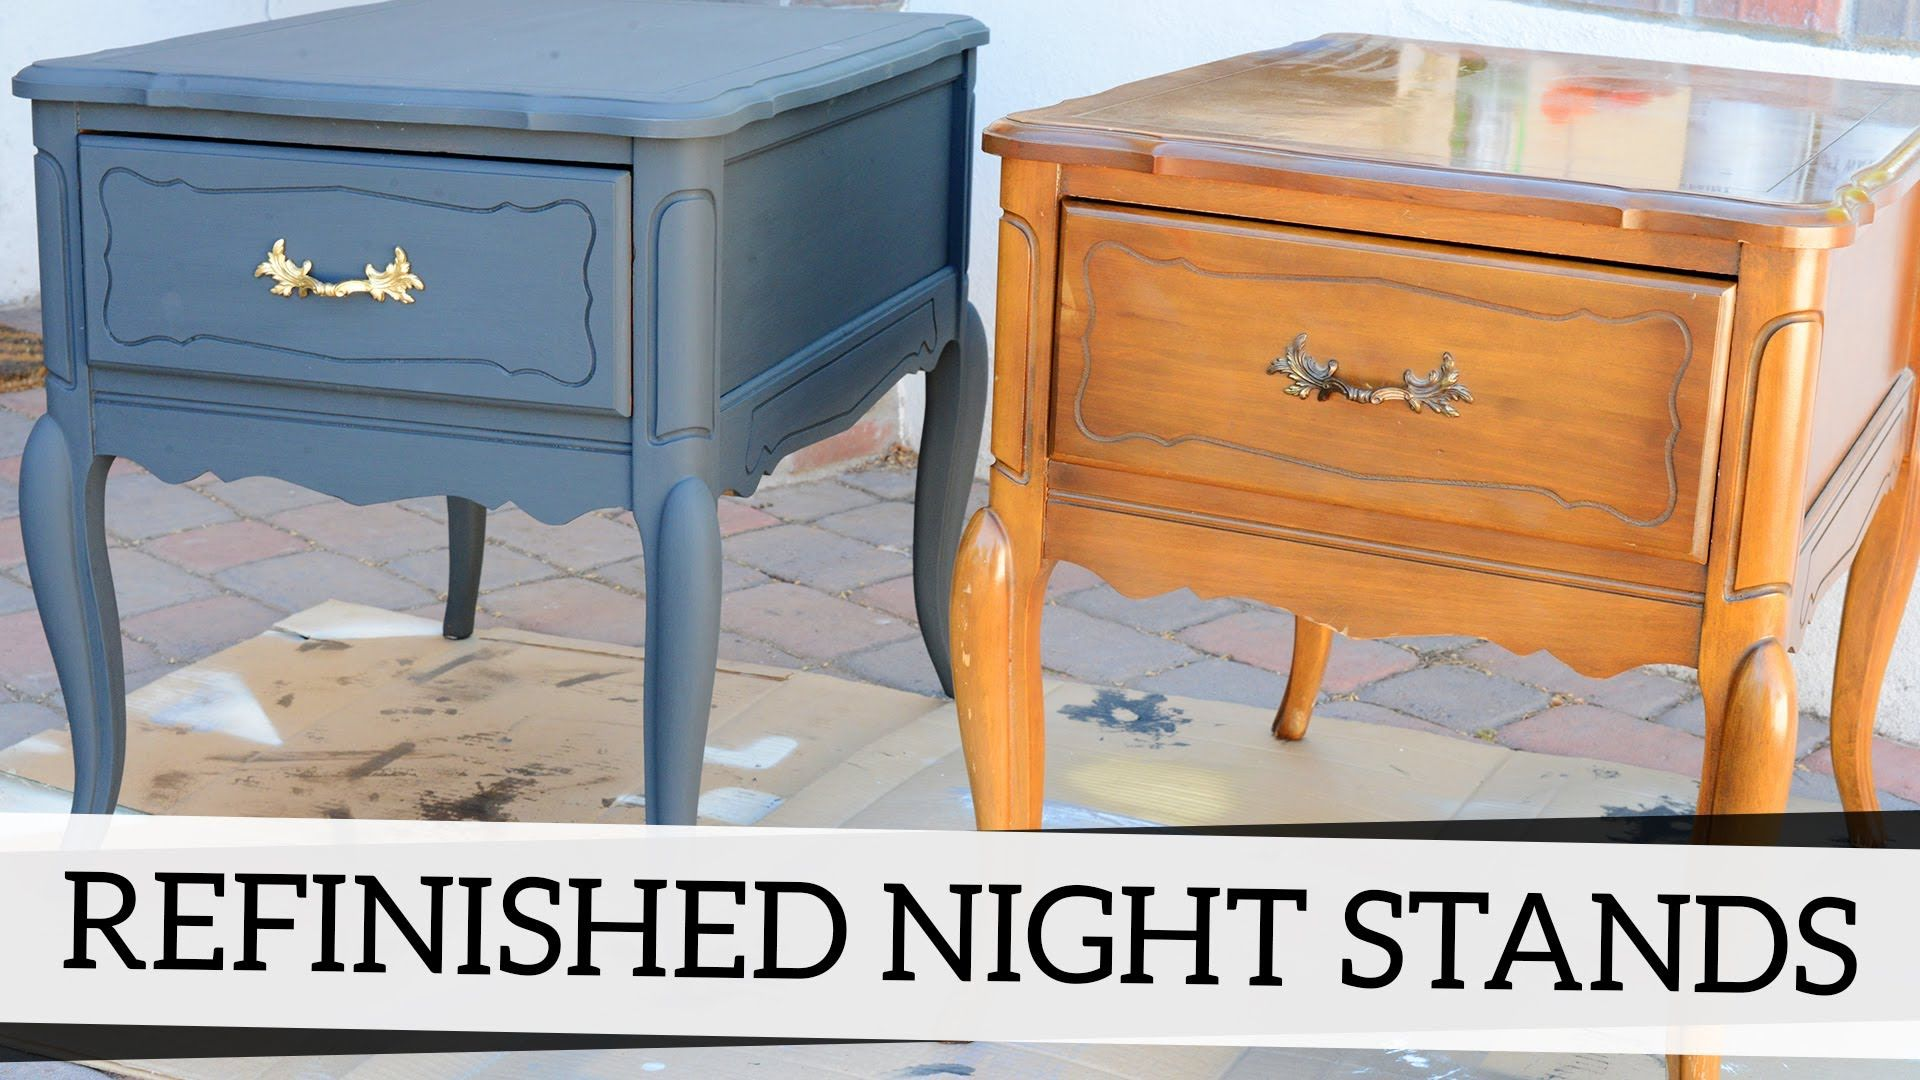 Refinished Nightstands with Annie Sloan Chalk Paint - YouTube